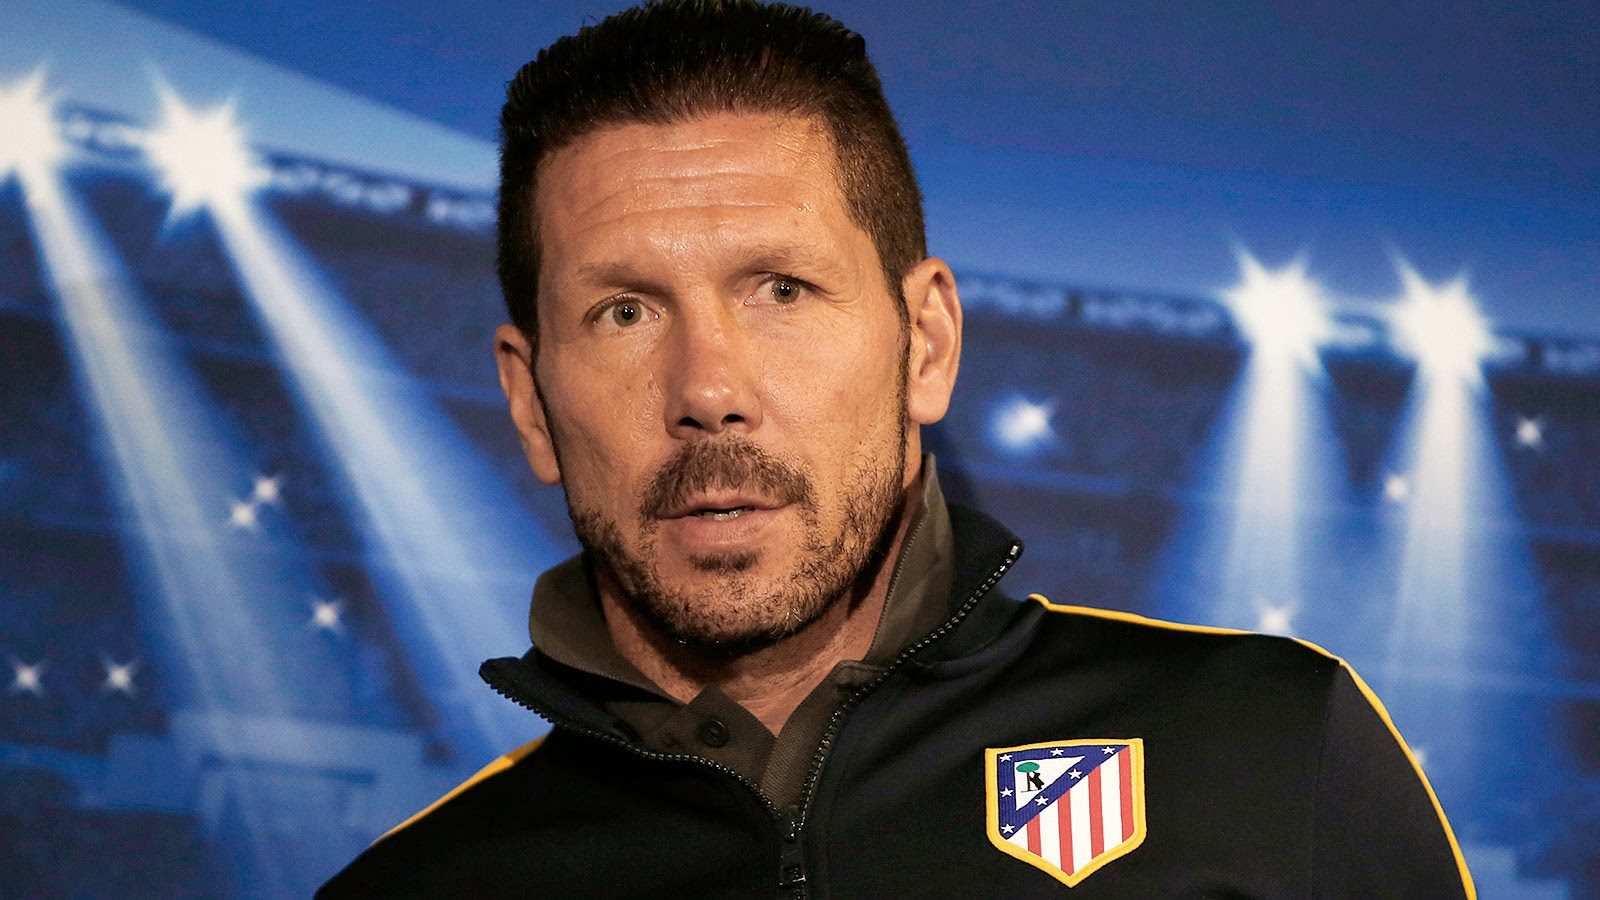 diego simeone, atletico madrid, atletico football club, el cholo simeone,